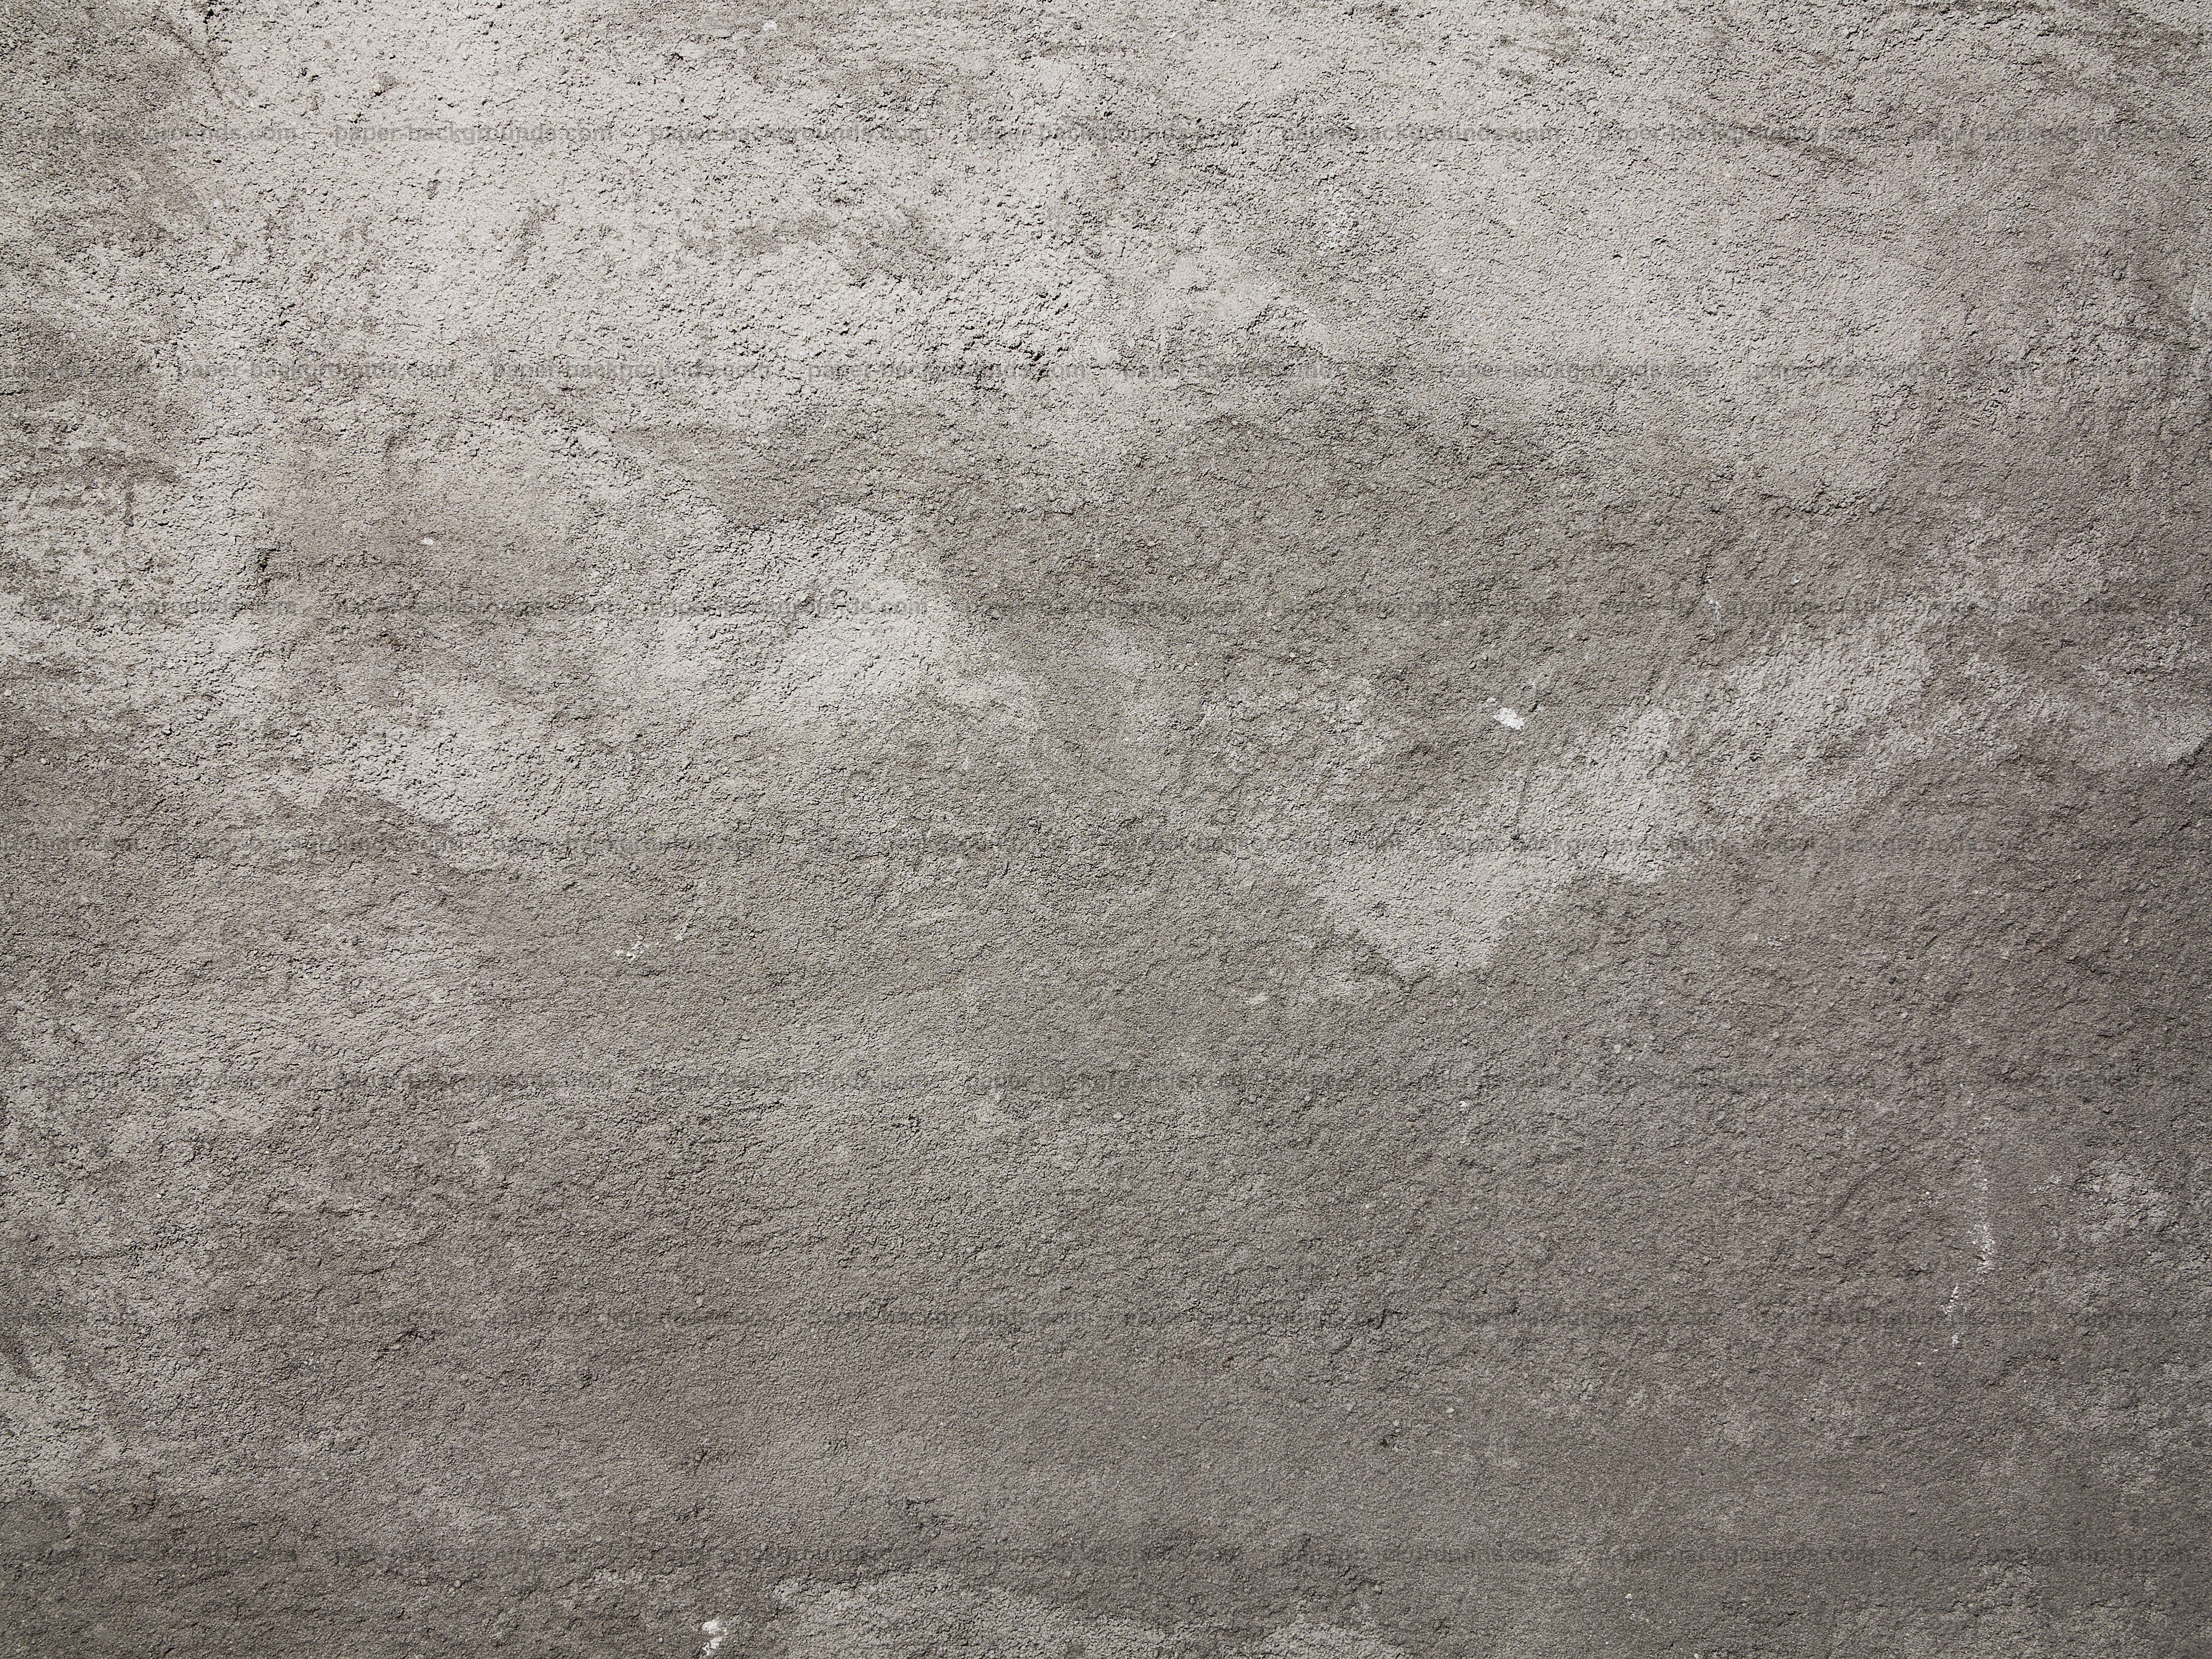 Concrete Wall Background Vintage concre 4352x3264